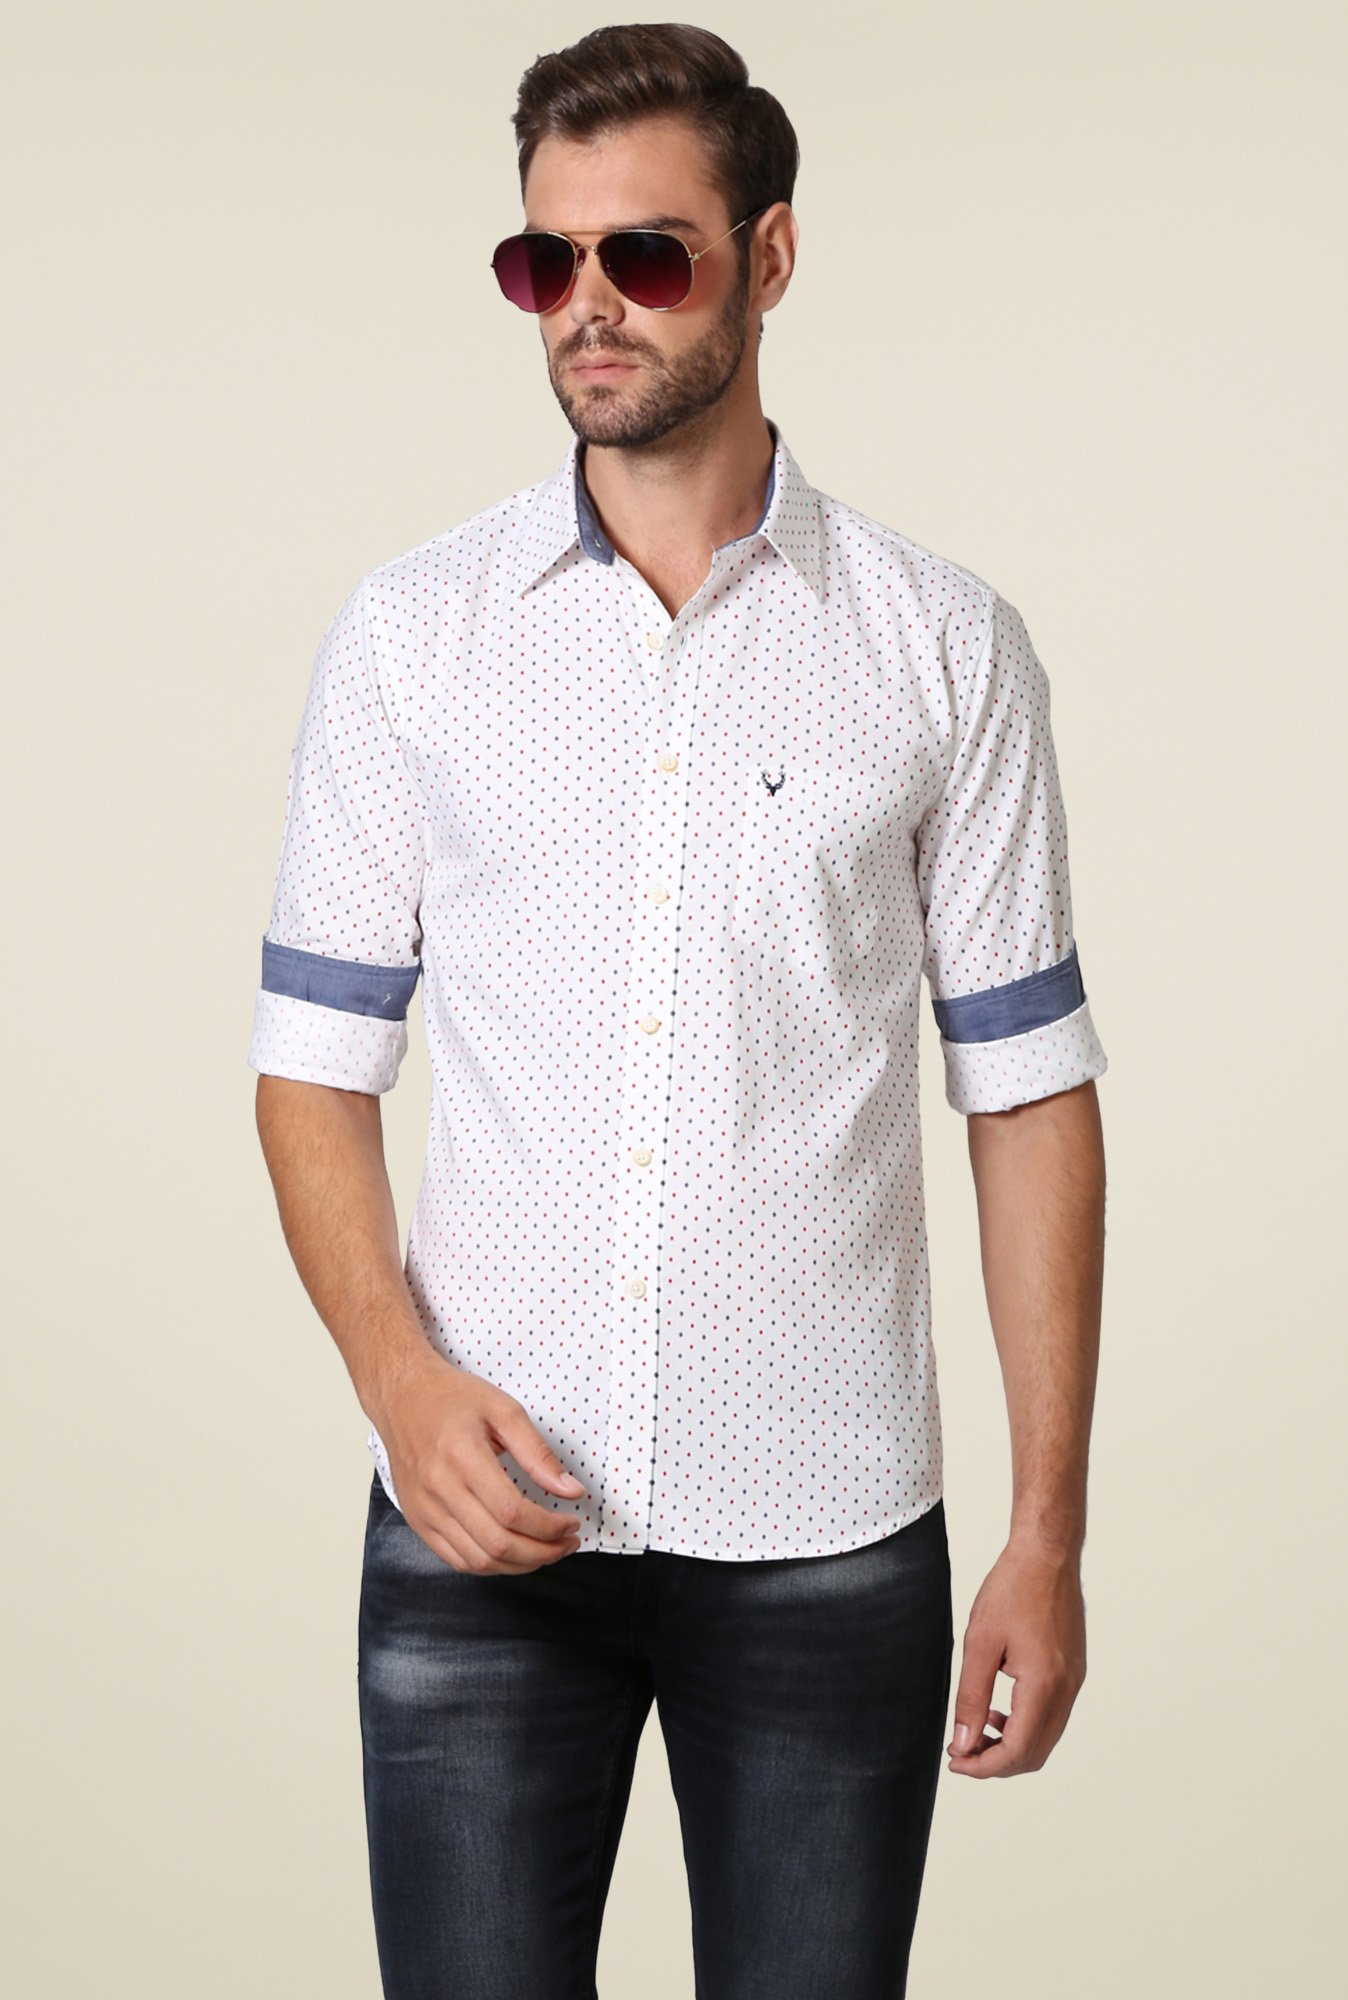 Allen Solly White Printed Cotton Slim Fit Shirt